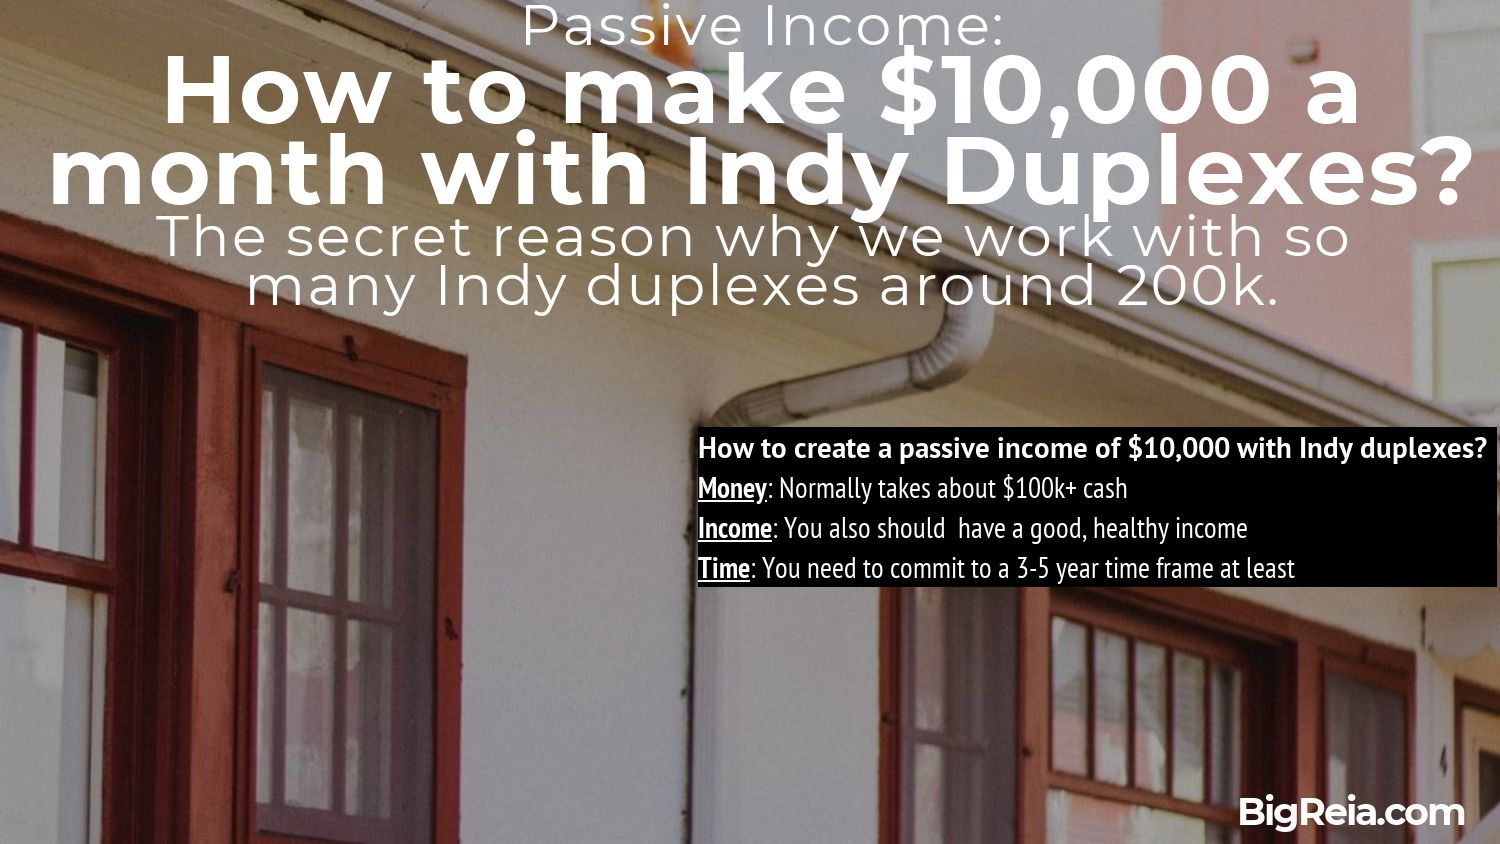 Indy duplexes and passive income